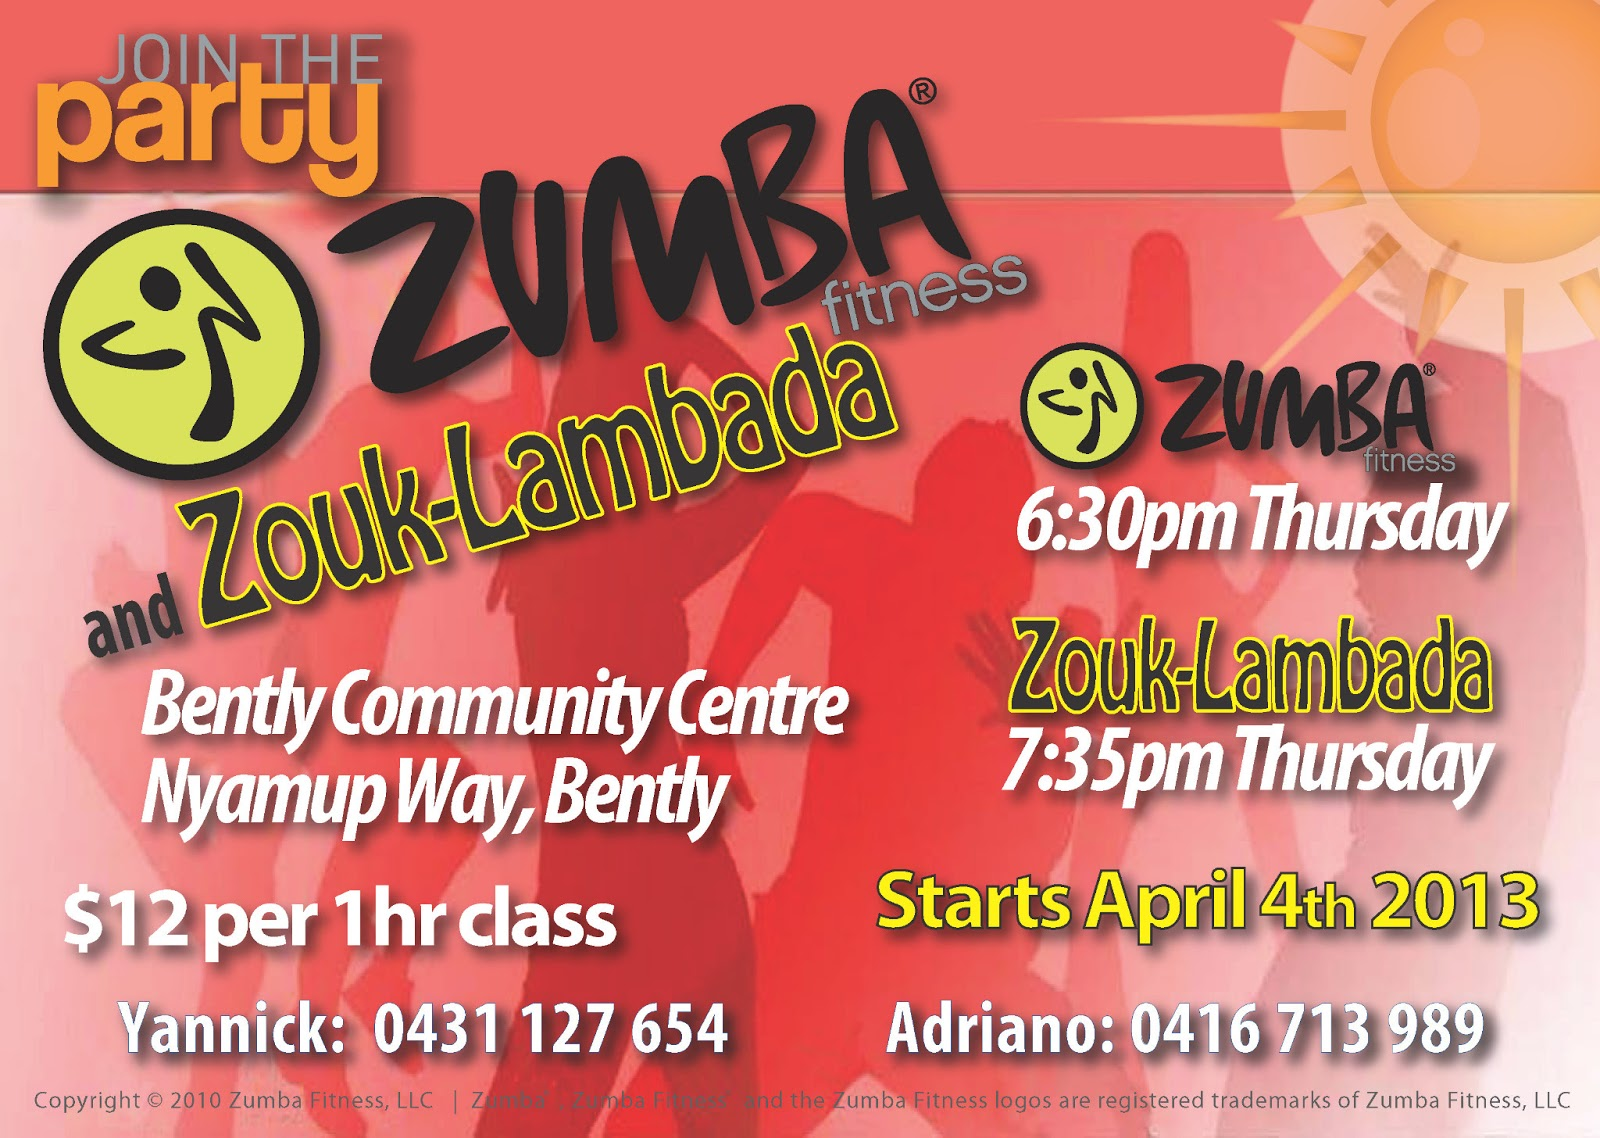 Zumba and Zouk Lambada Perth